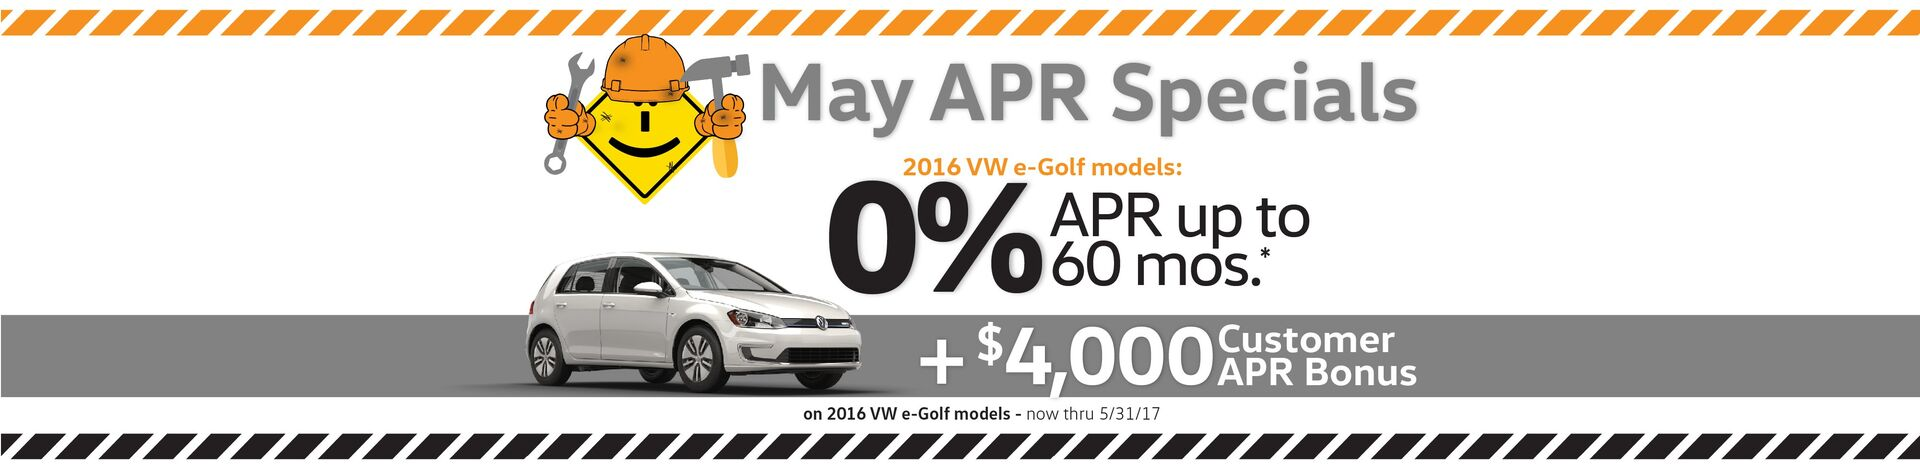 Capistrano VW May 0% APR for 60 months on select new 2017 VW models